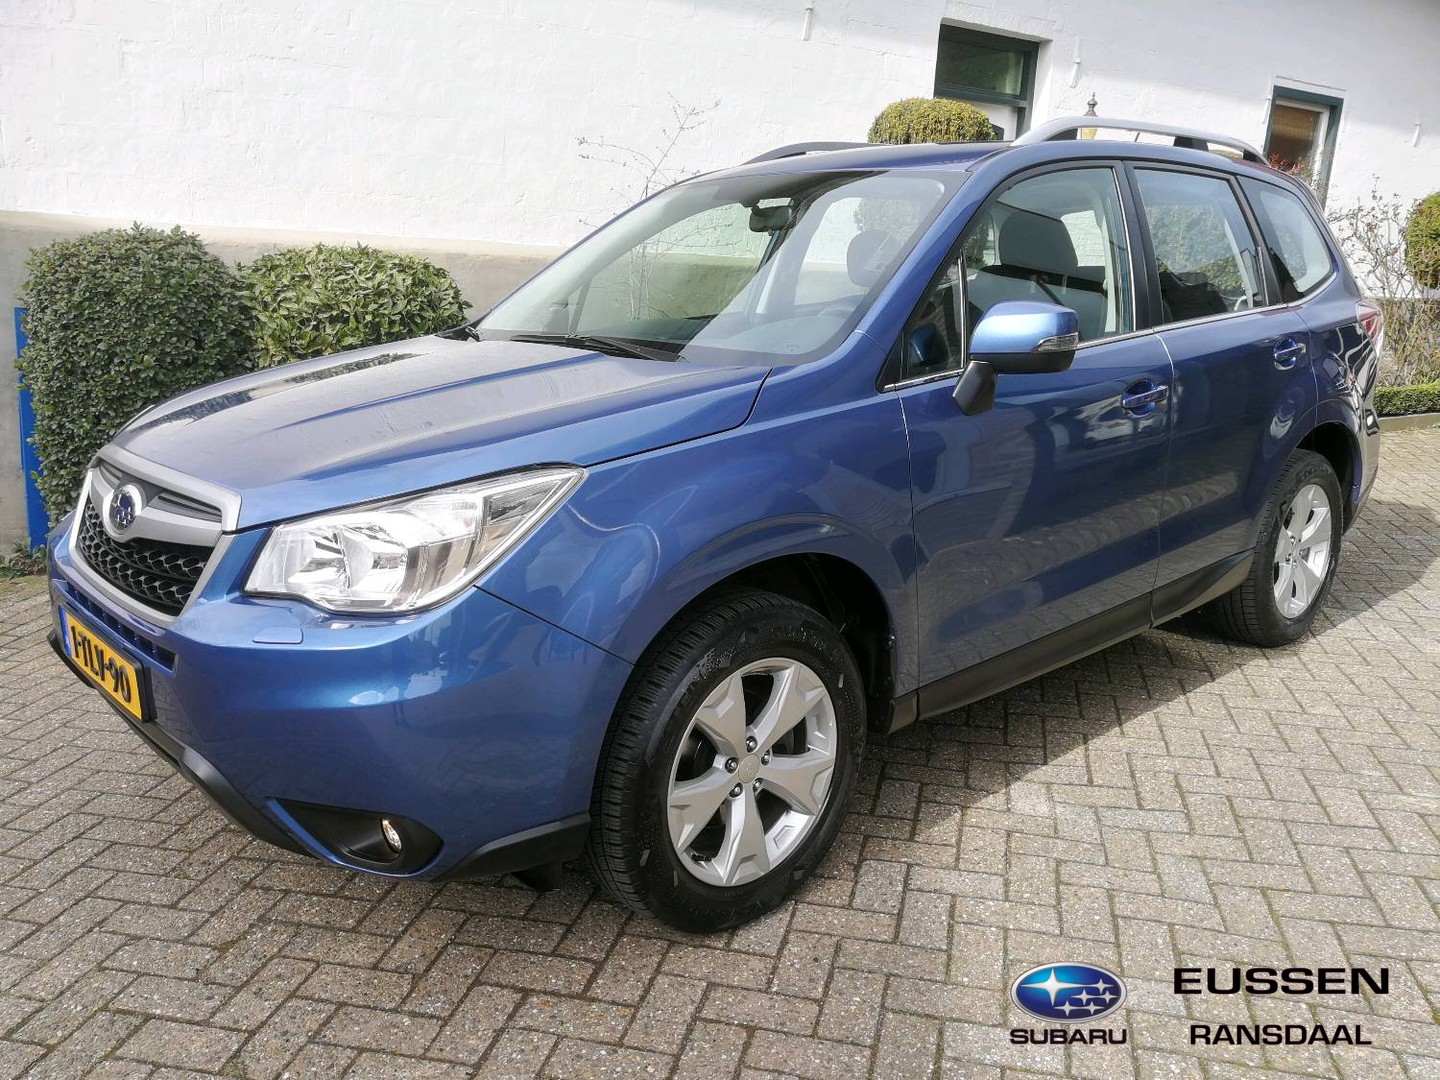 Subaru Forester 2.0 luxury